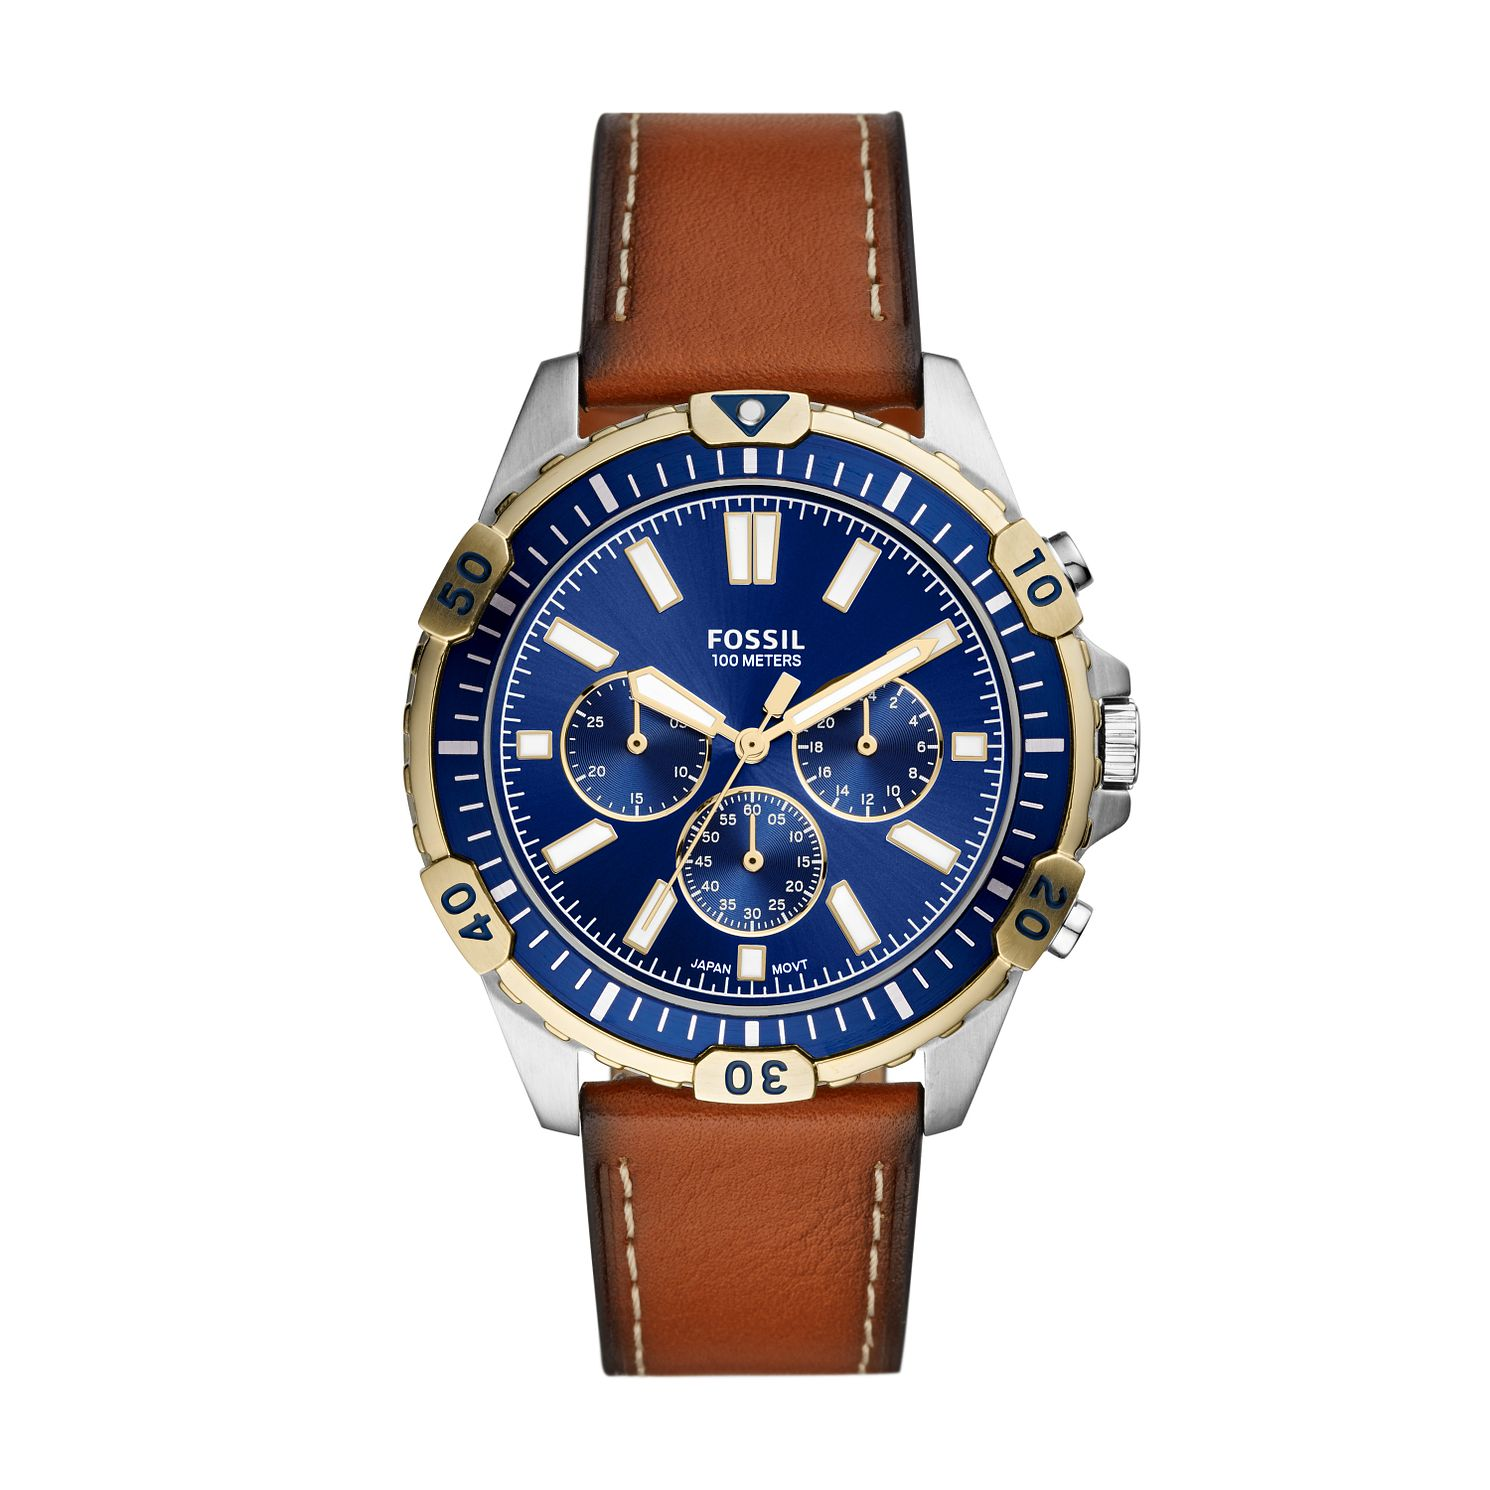 Fossil Men's Two Tone Blue Dial Brown Leather Strap Watch - Product number 4011333